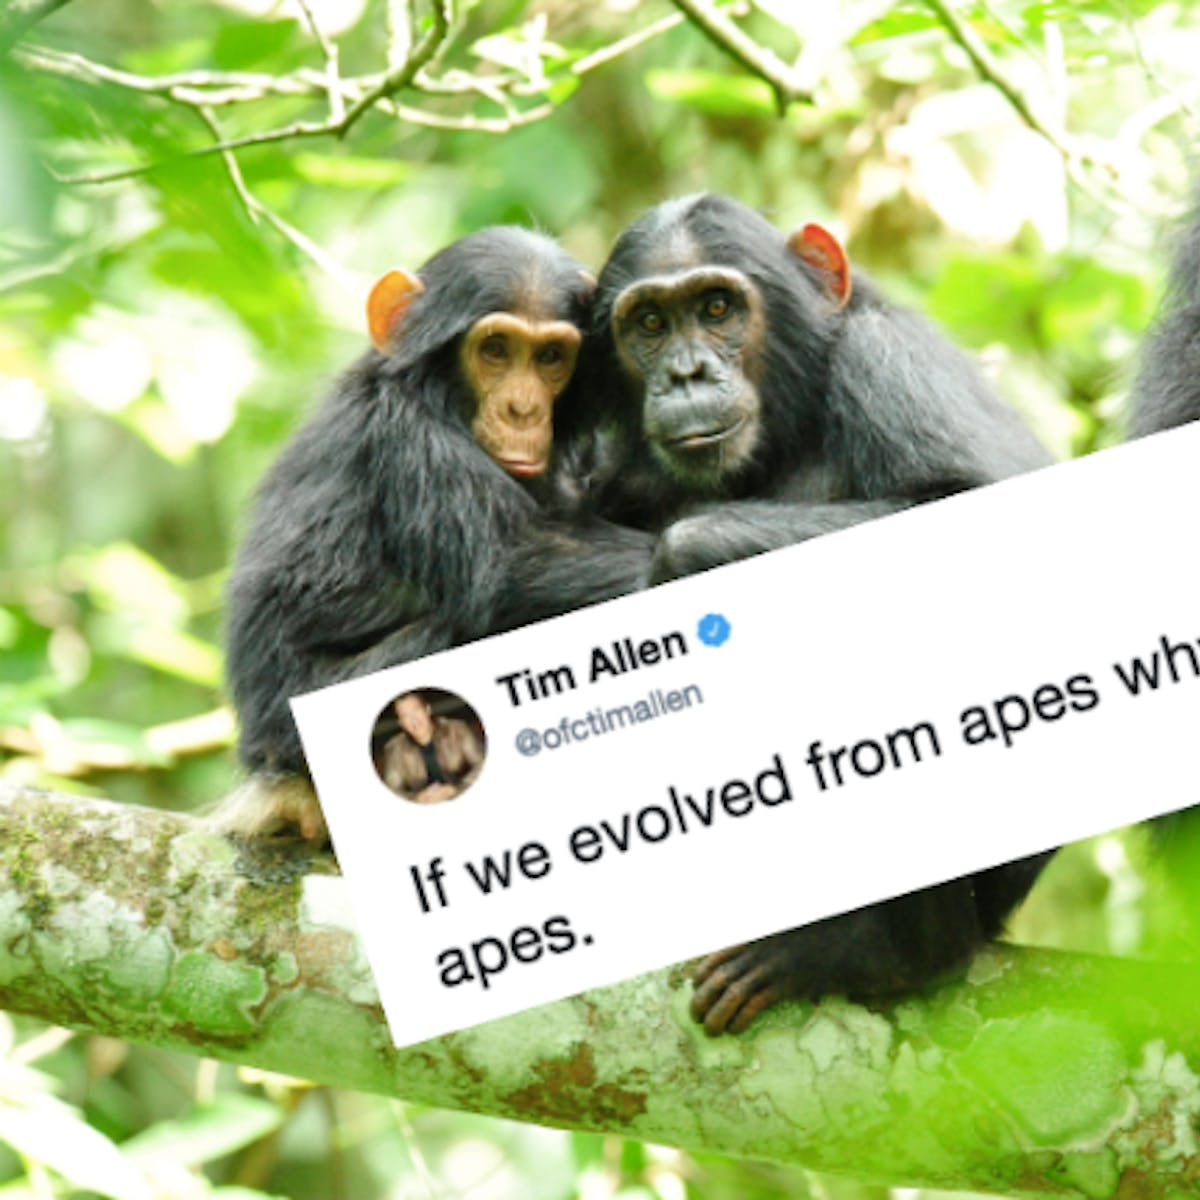 What Tim Allen's Existential Tweet Gets Very, Very Wrong About Human Evolution